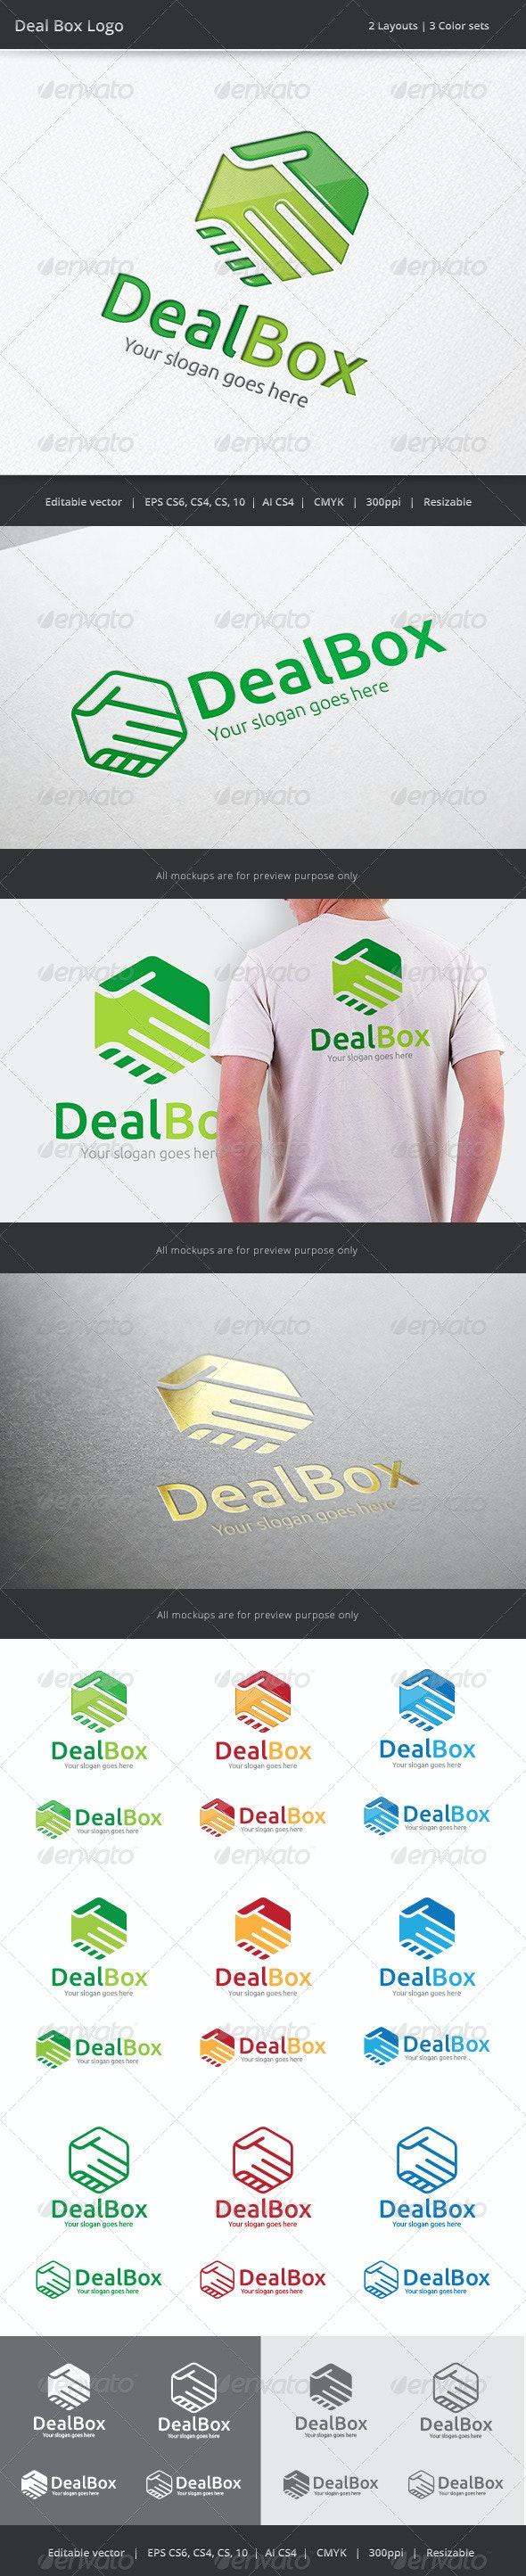 Deal Box Hand Shake Logo - Objects Logo Templates